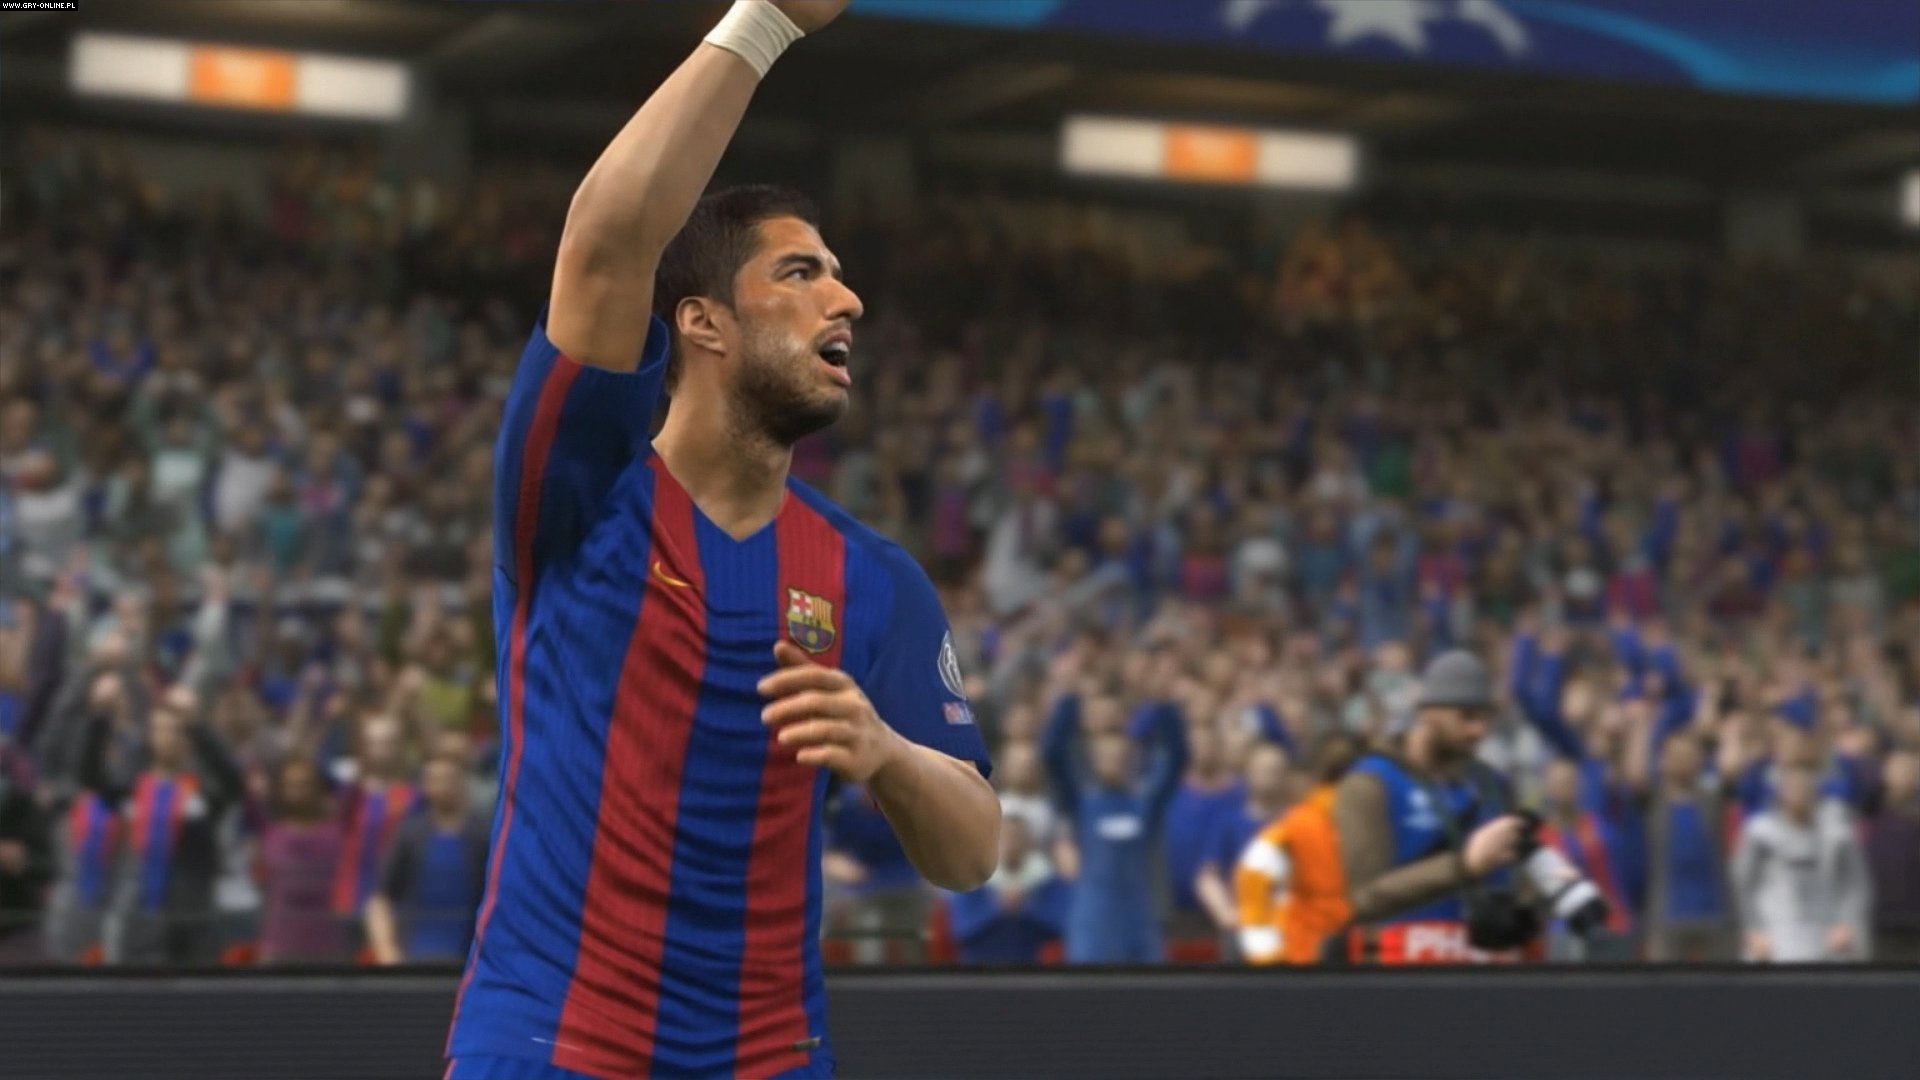 Pro Evolution Soccer 2017 PC, PS4, XONE Gry Screen 6/50, Konami